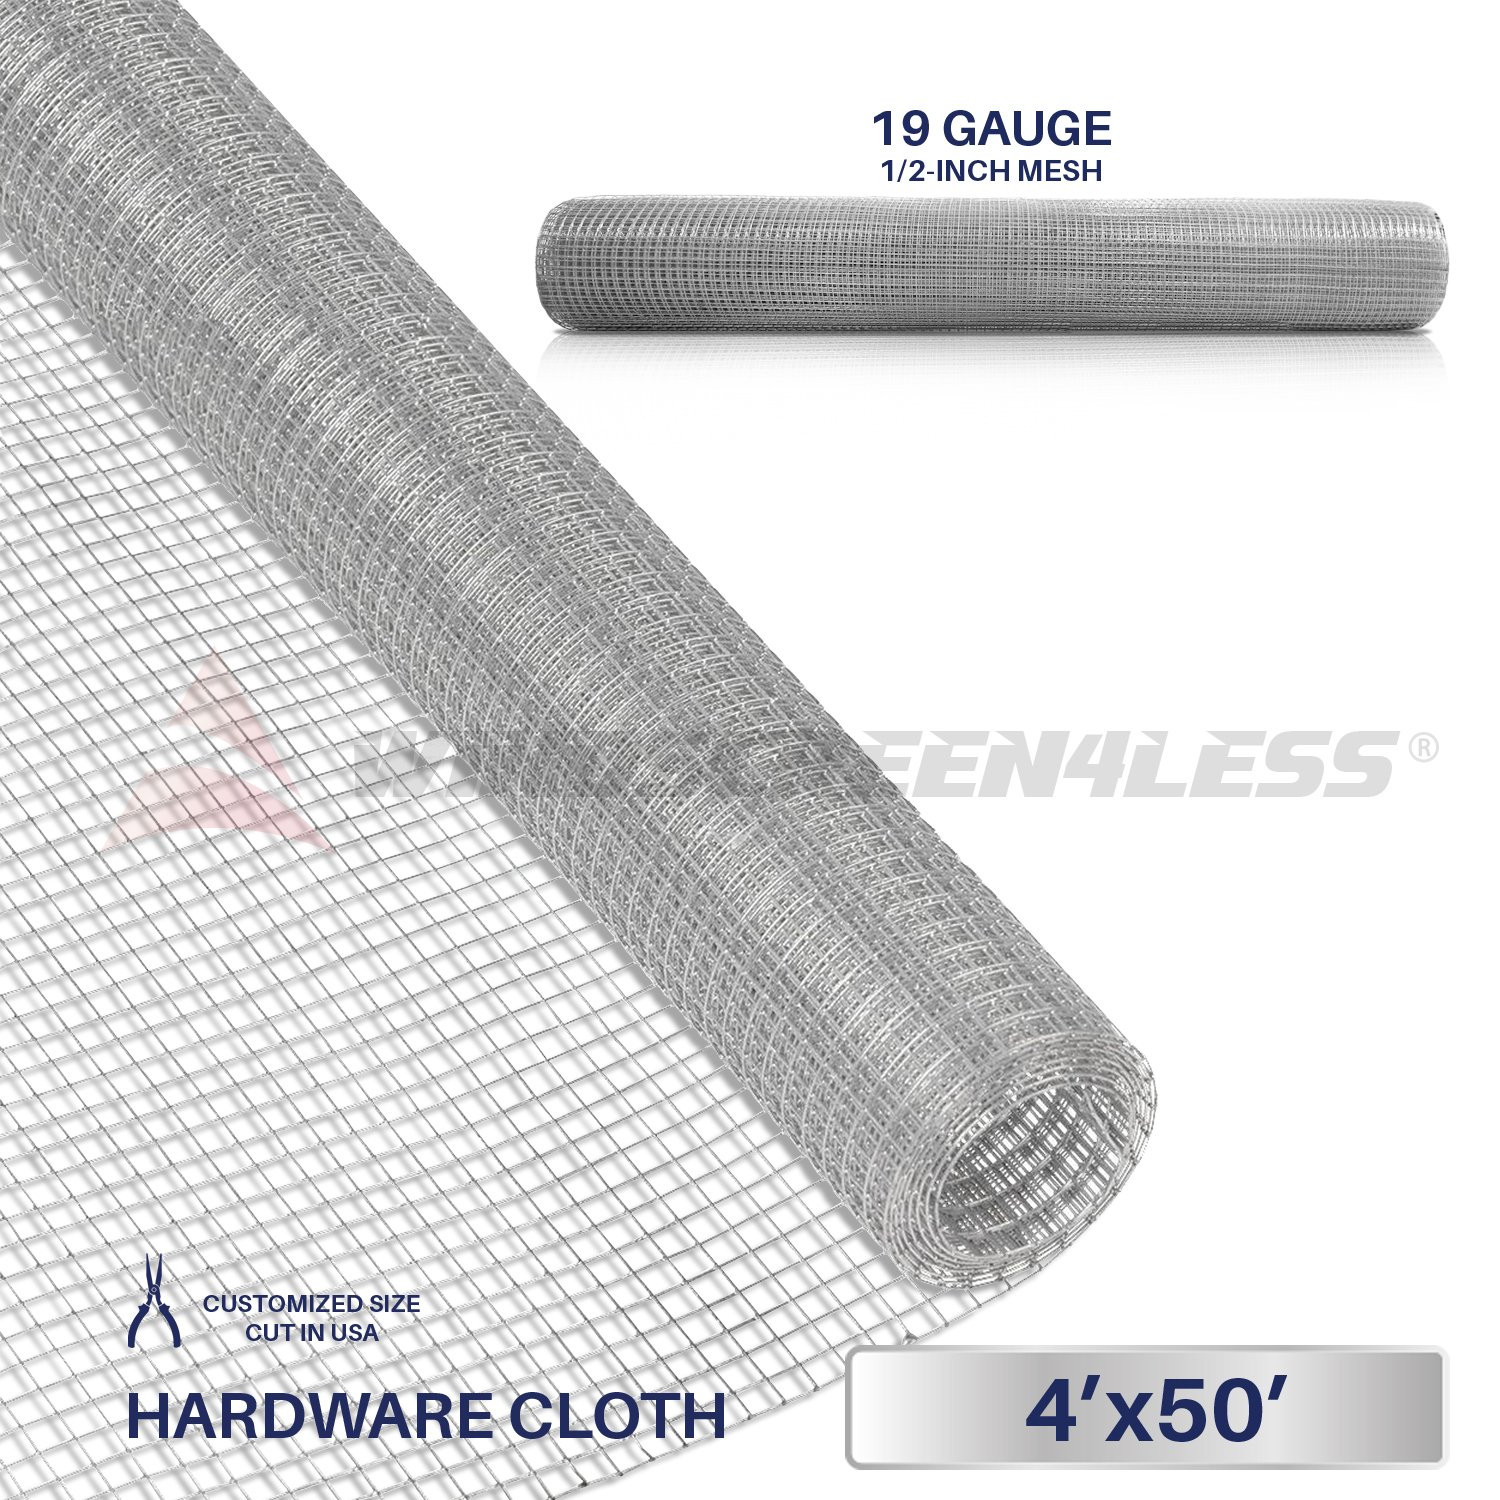 Windscreen4less 19 Gauge 1/2 Inch Square Galvanized Mesh Hardware Cloth 48-Inch Tall Custom Size Cut-to-length 4ft x 50ft